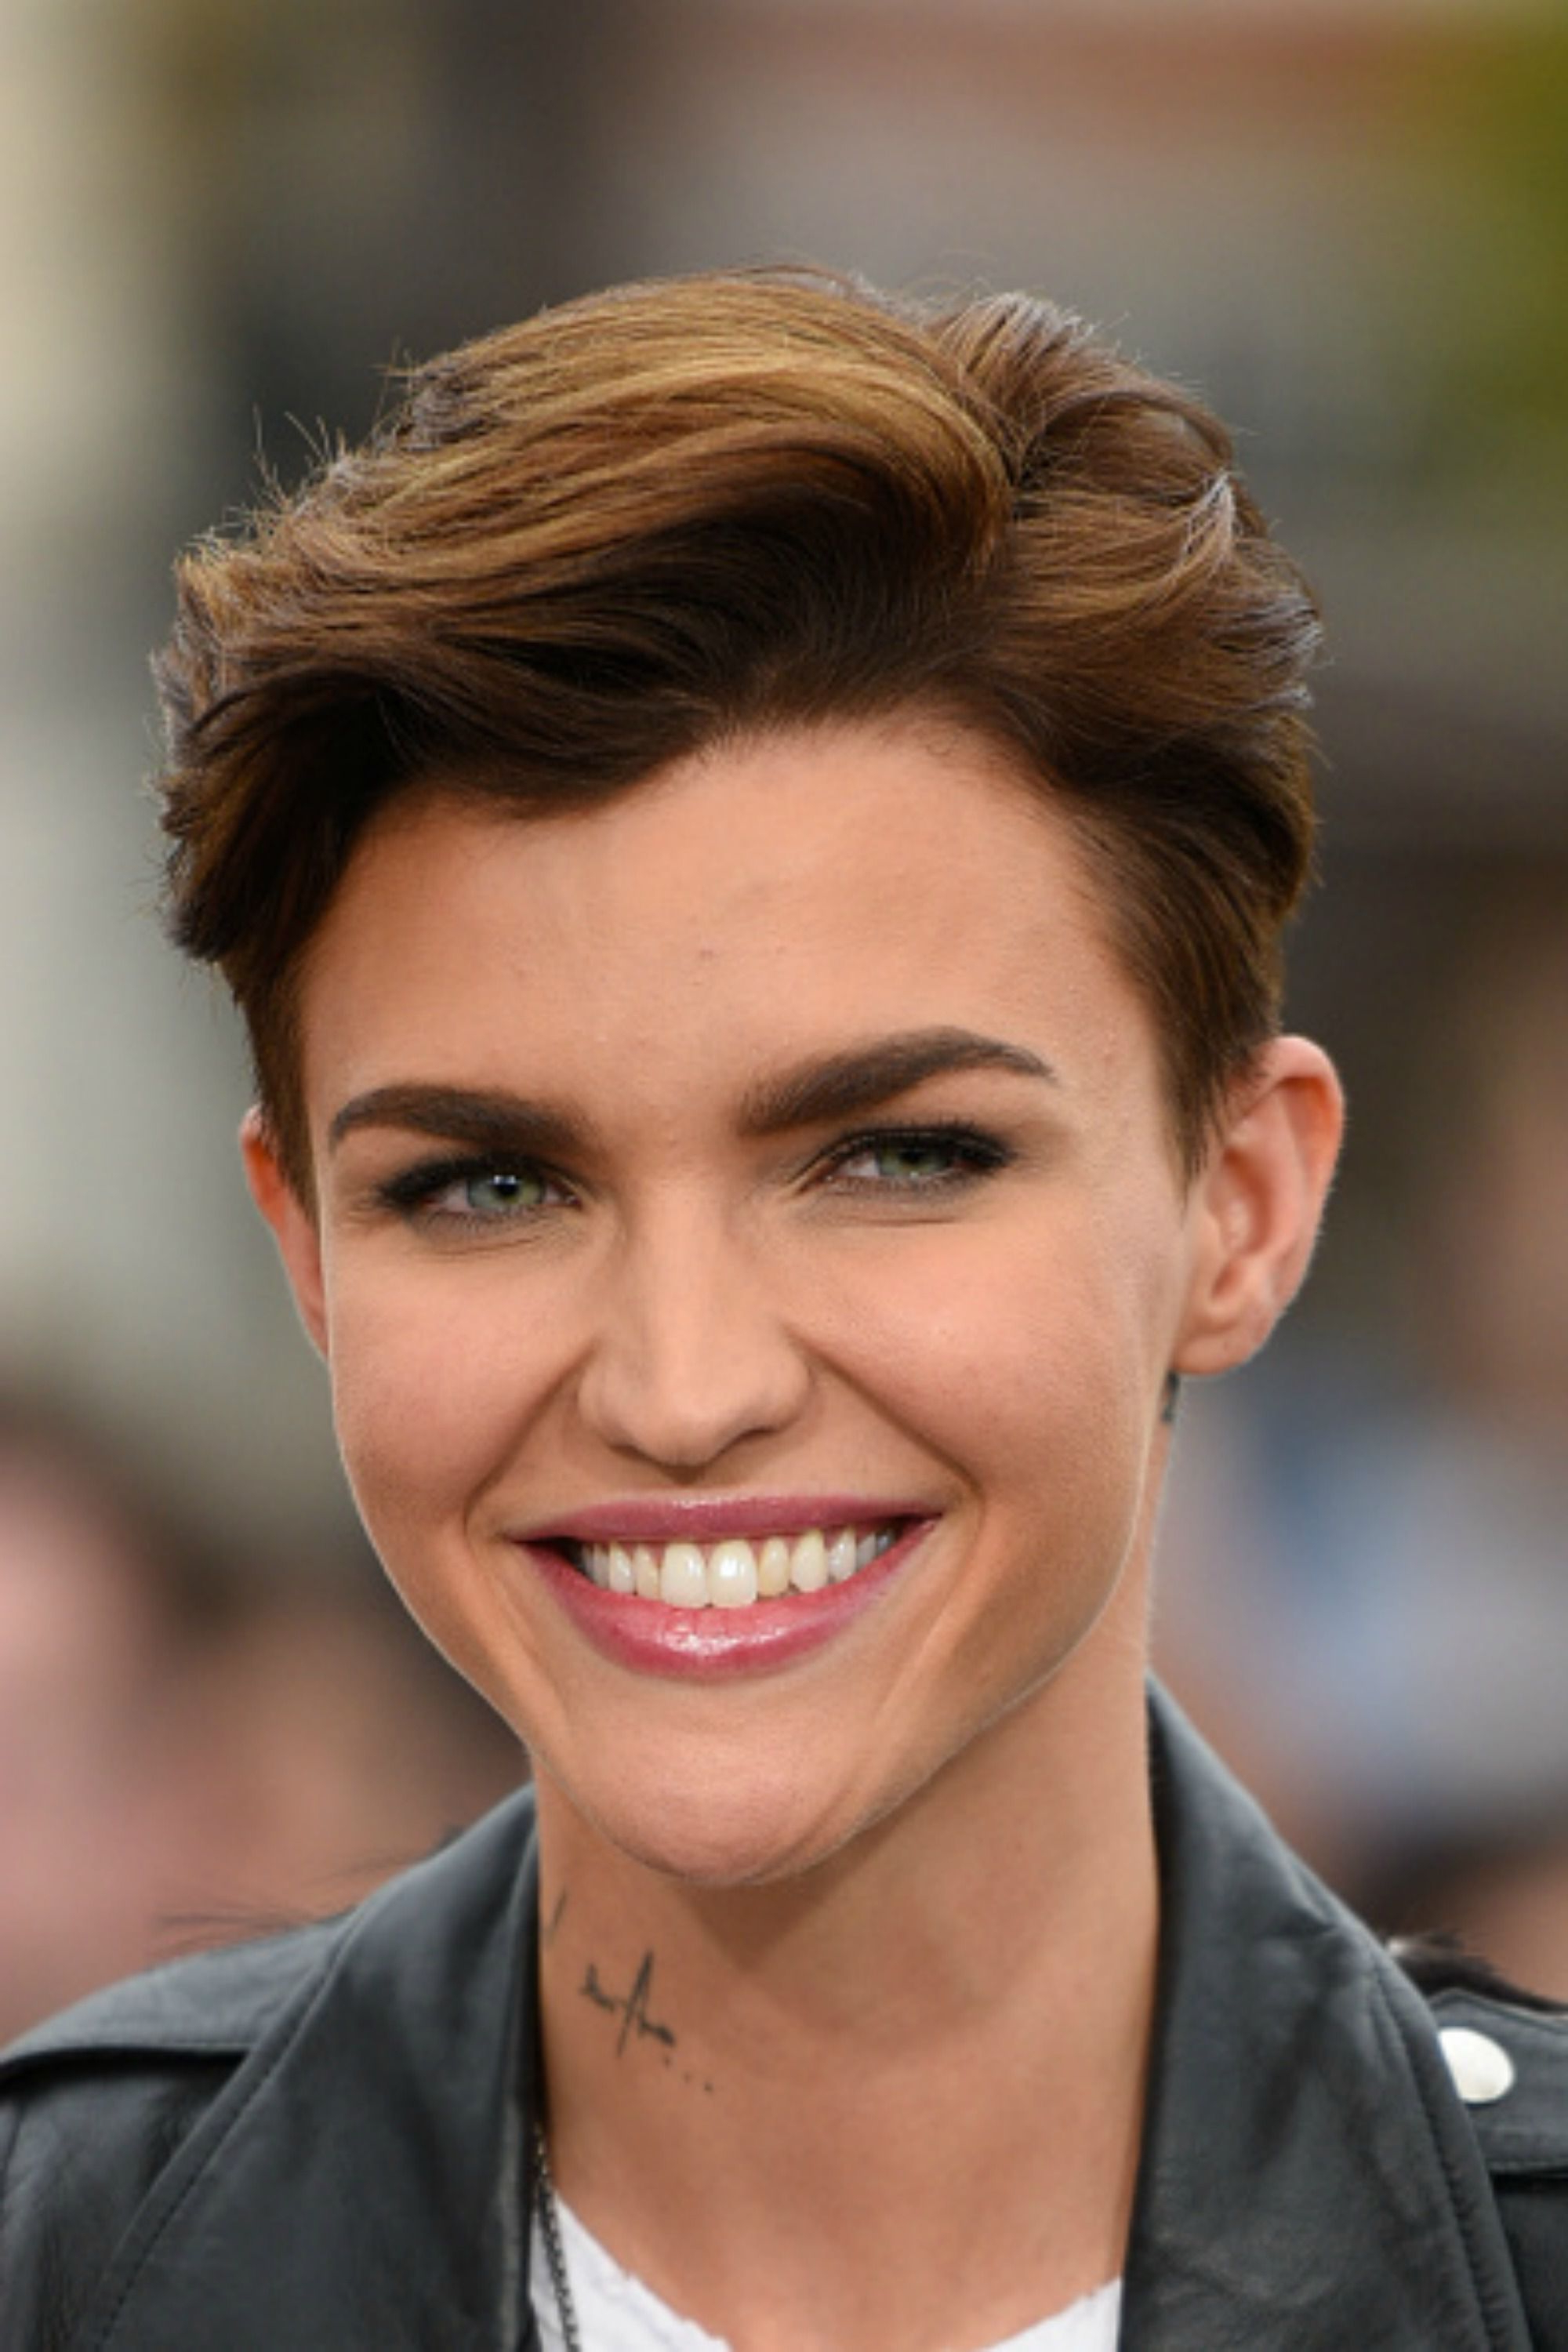 30 Short Hairstyles For Thick Hair 2017 – Women's Haircuts For Short In Most Current Medium Hairstyles For Women With Big Ears (View 12 of 20)